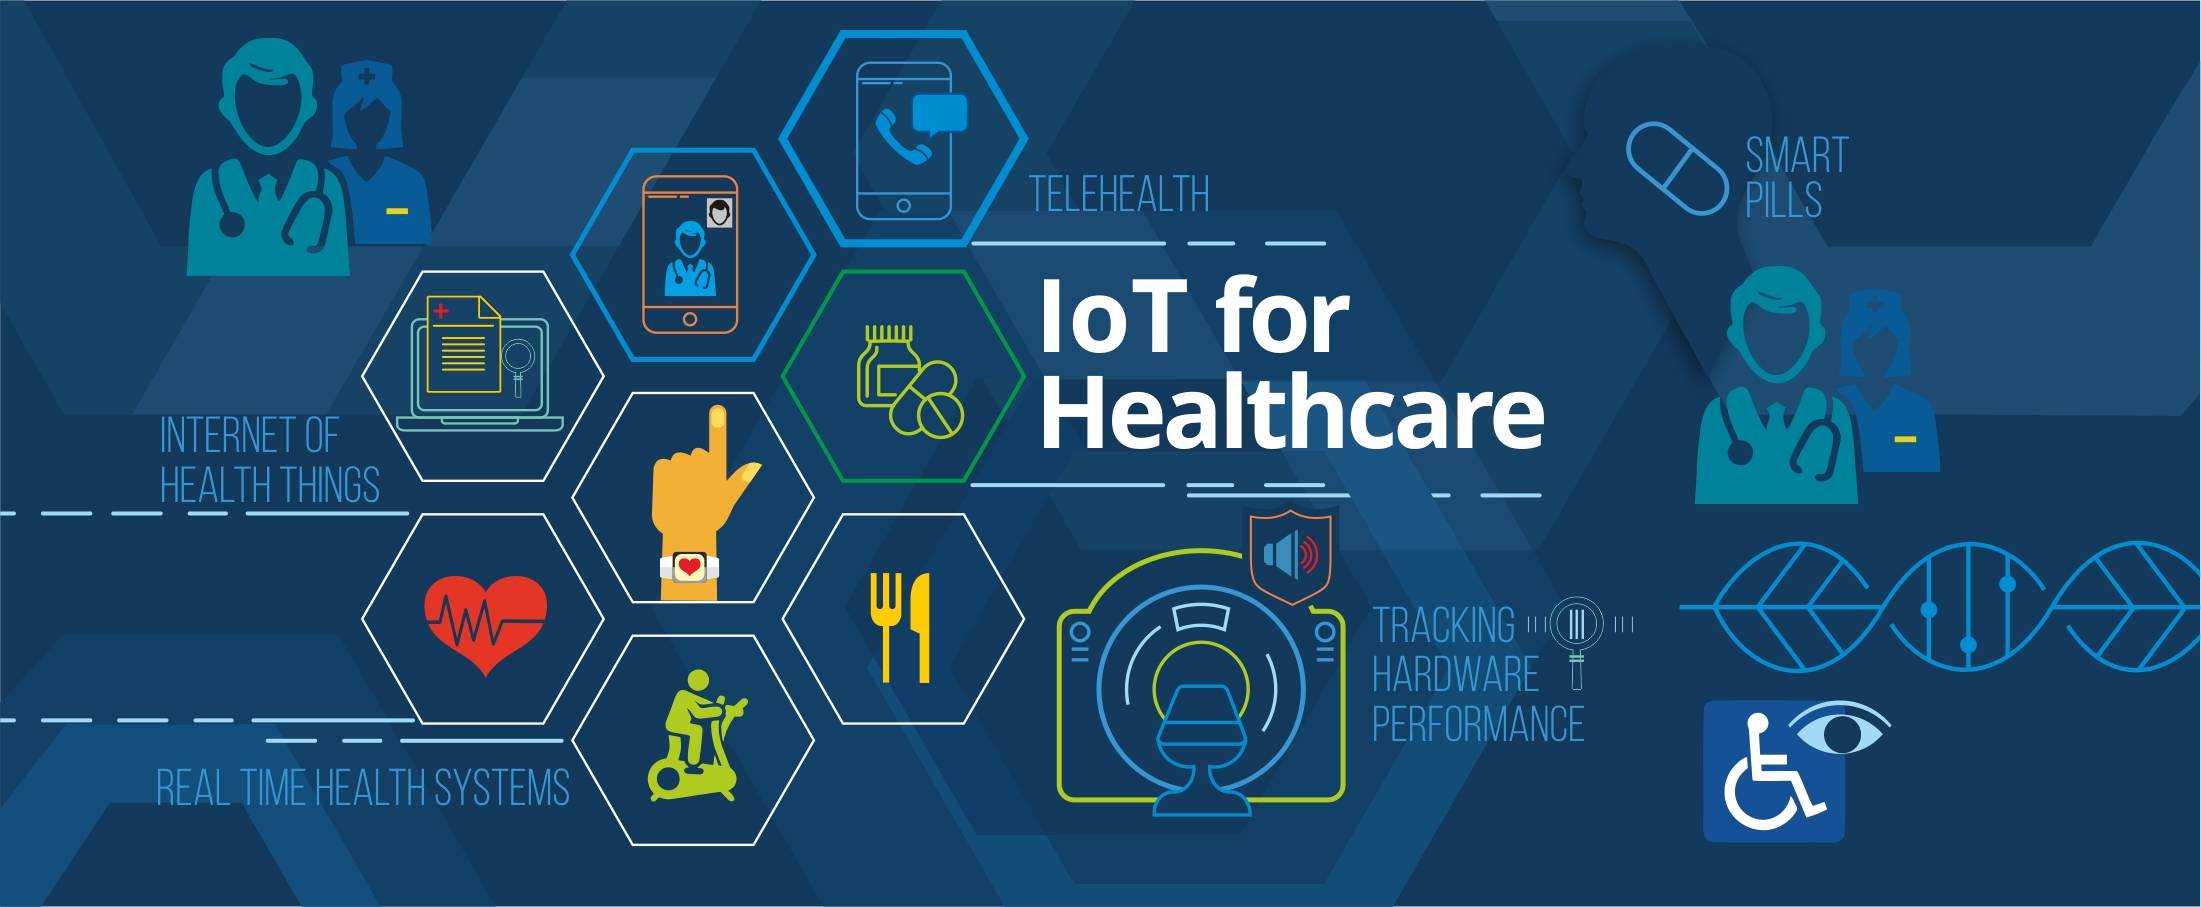 IoT for Healthcare Banner